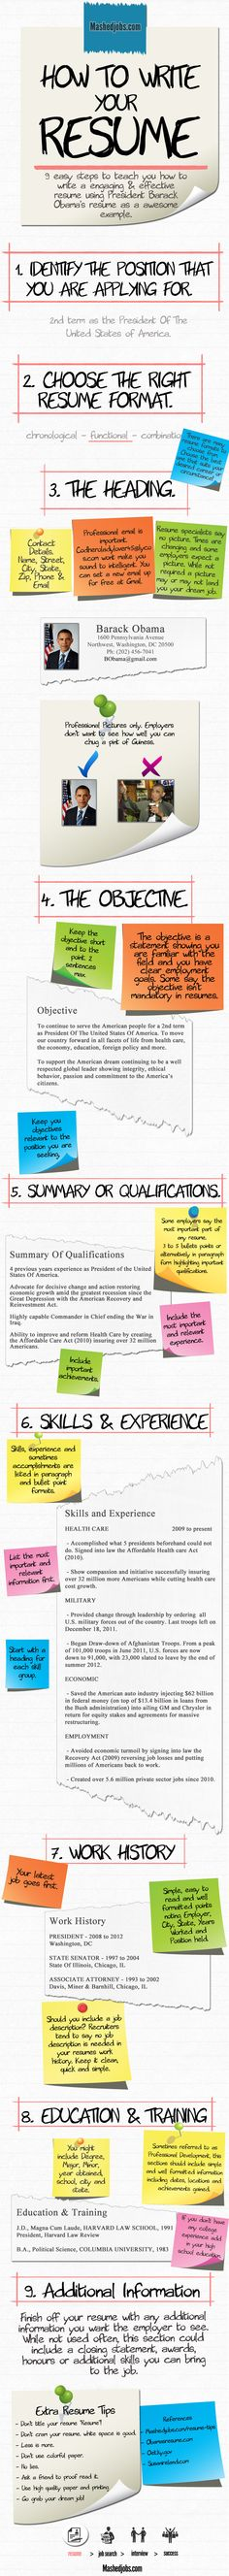 How-to-write-your-resume